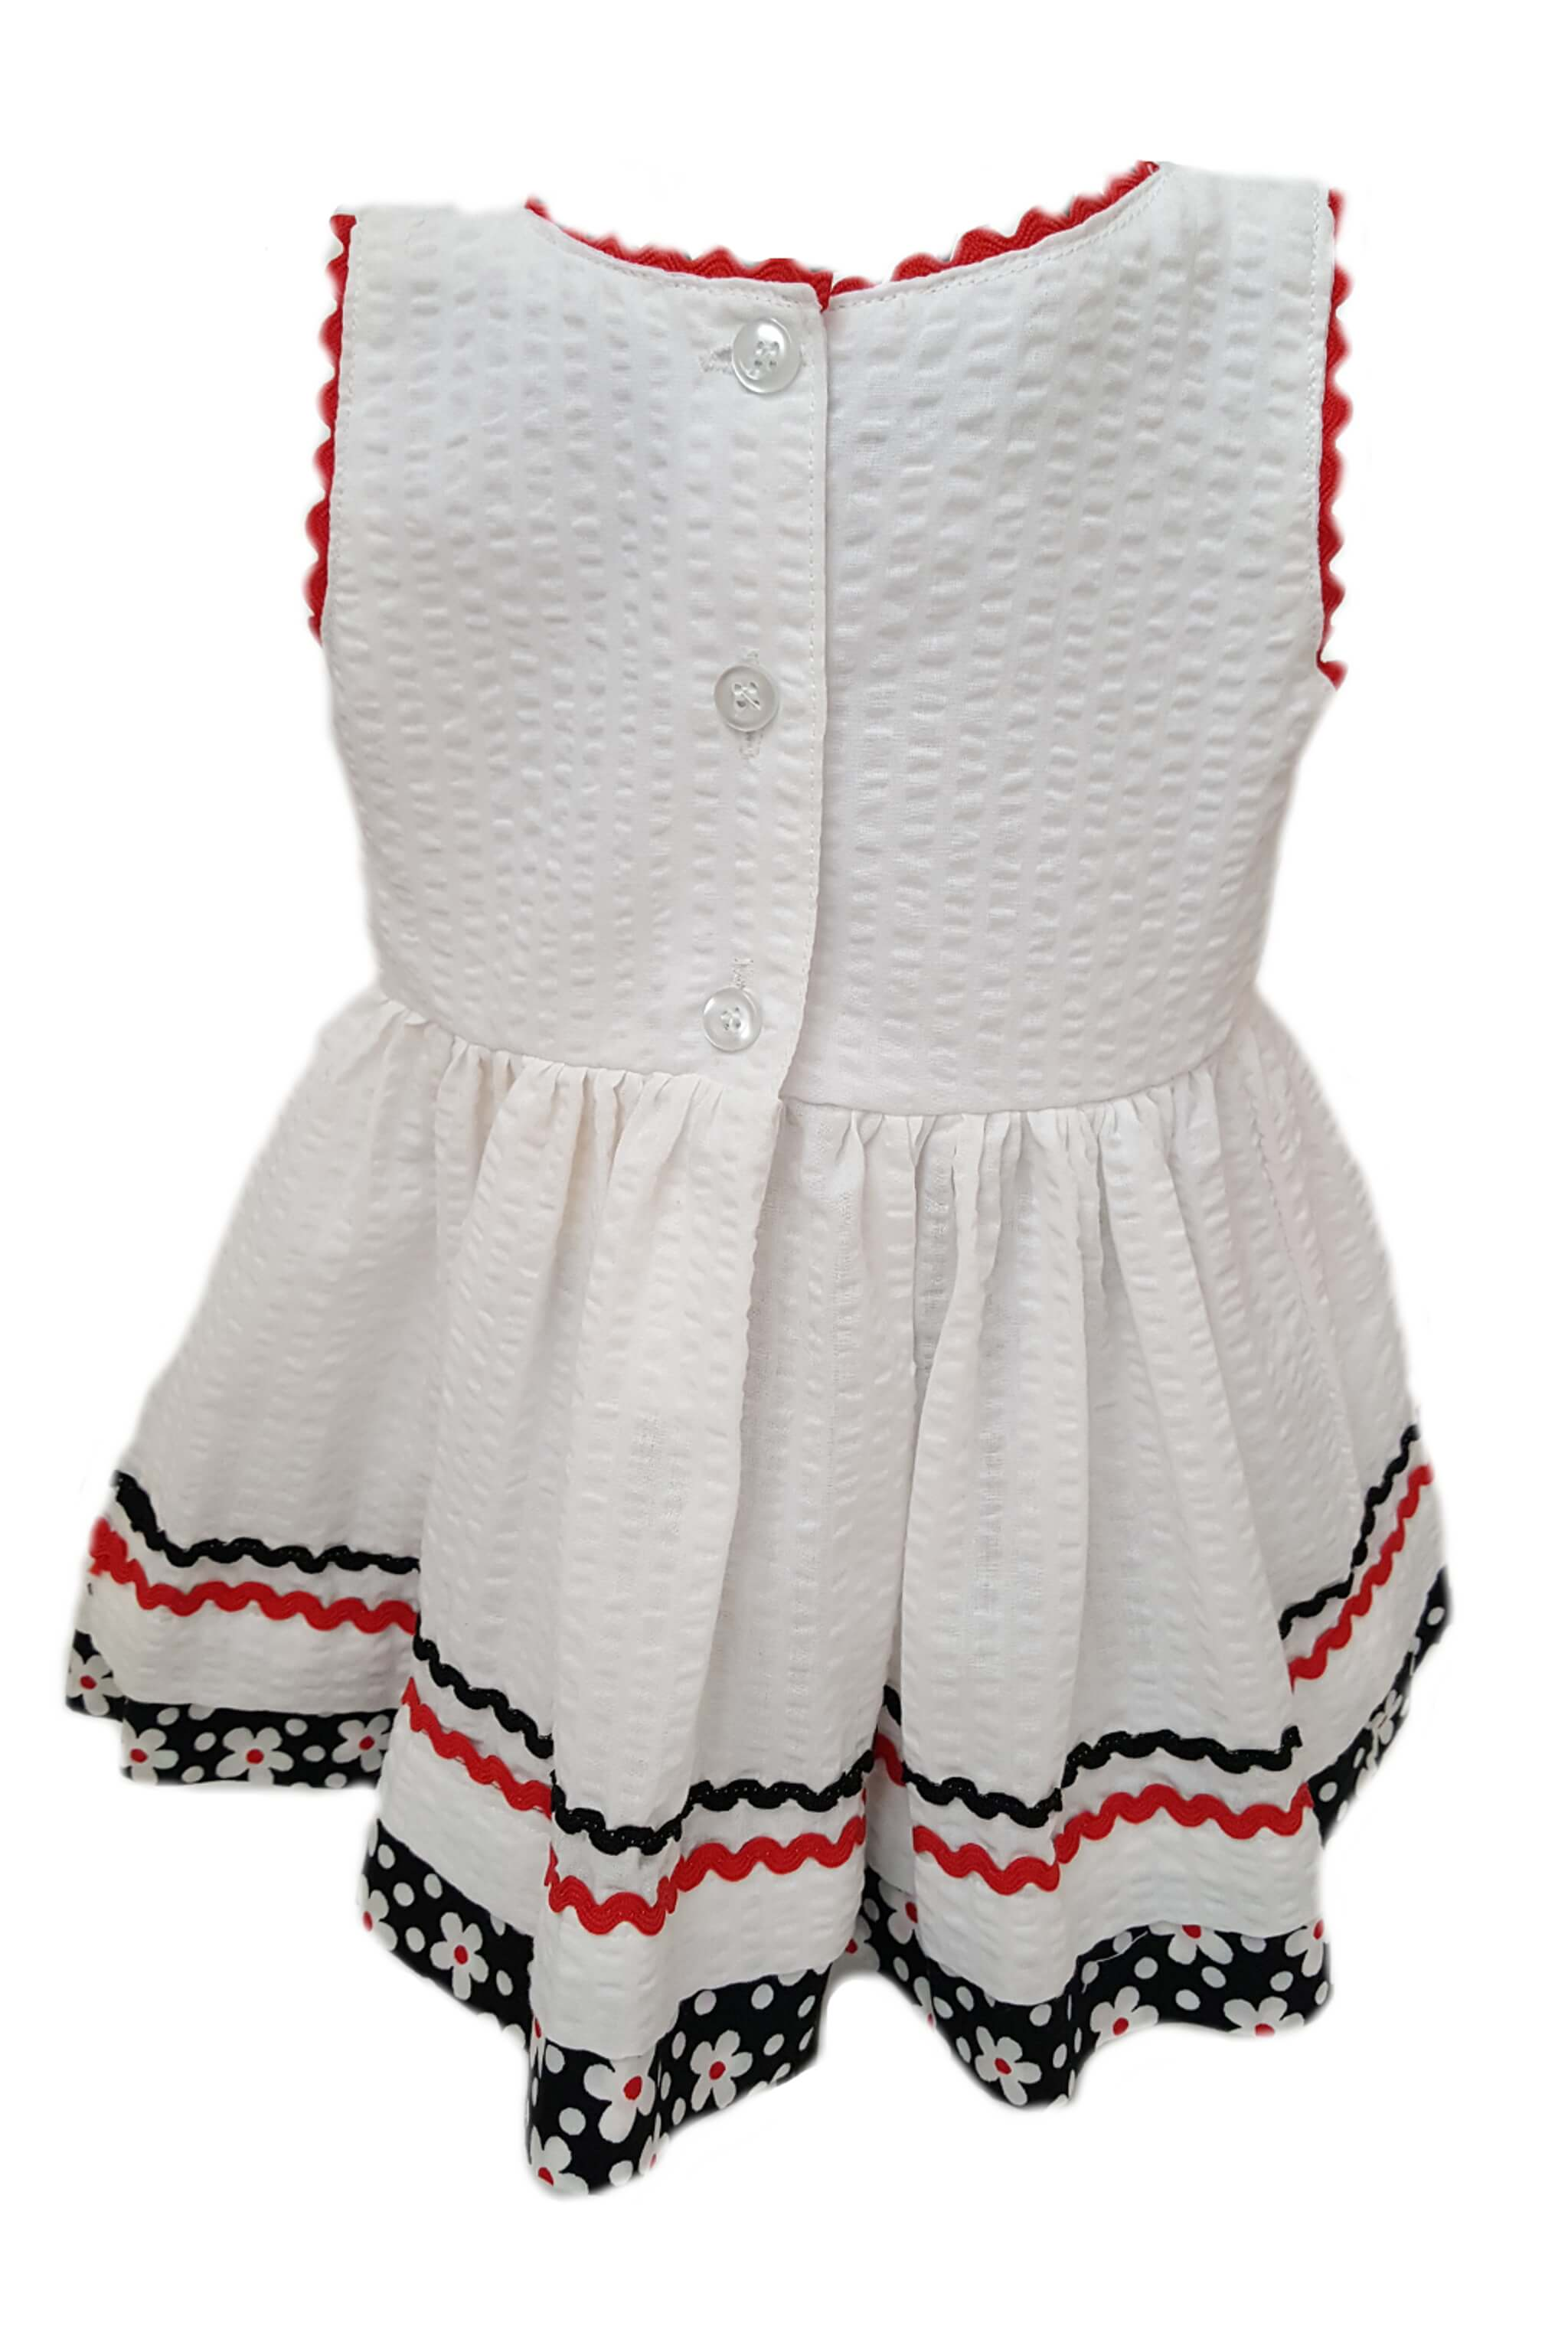 Back of white seersucker dress with red trim and button back for little girls